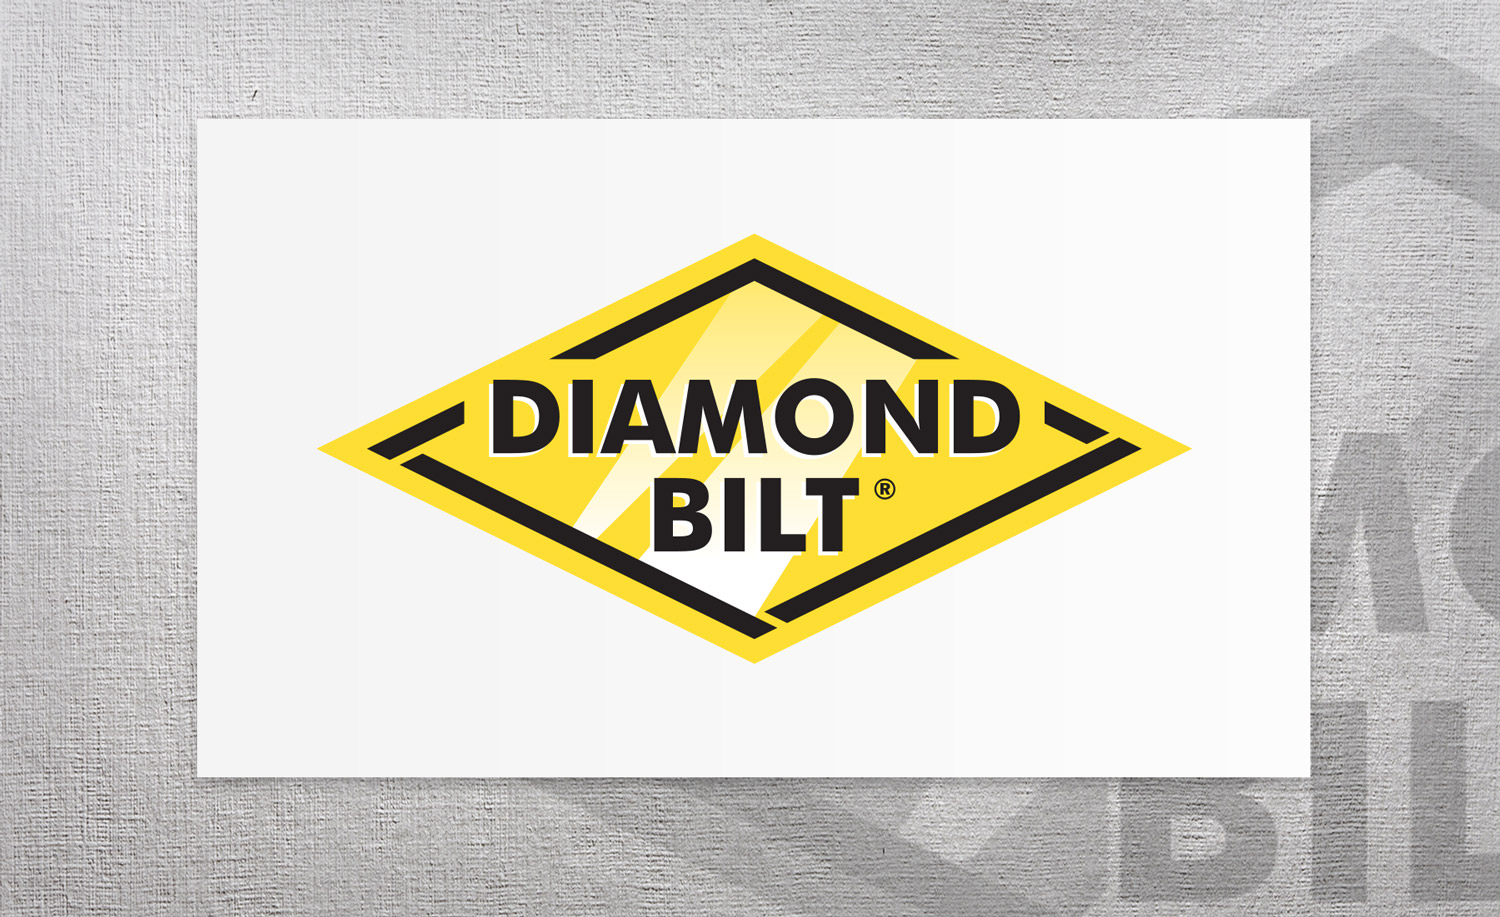 Diamond Bilt logo